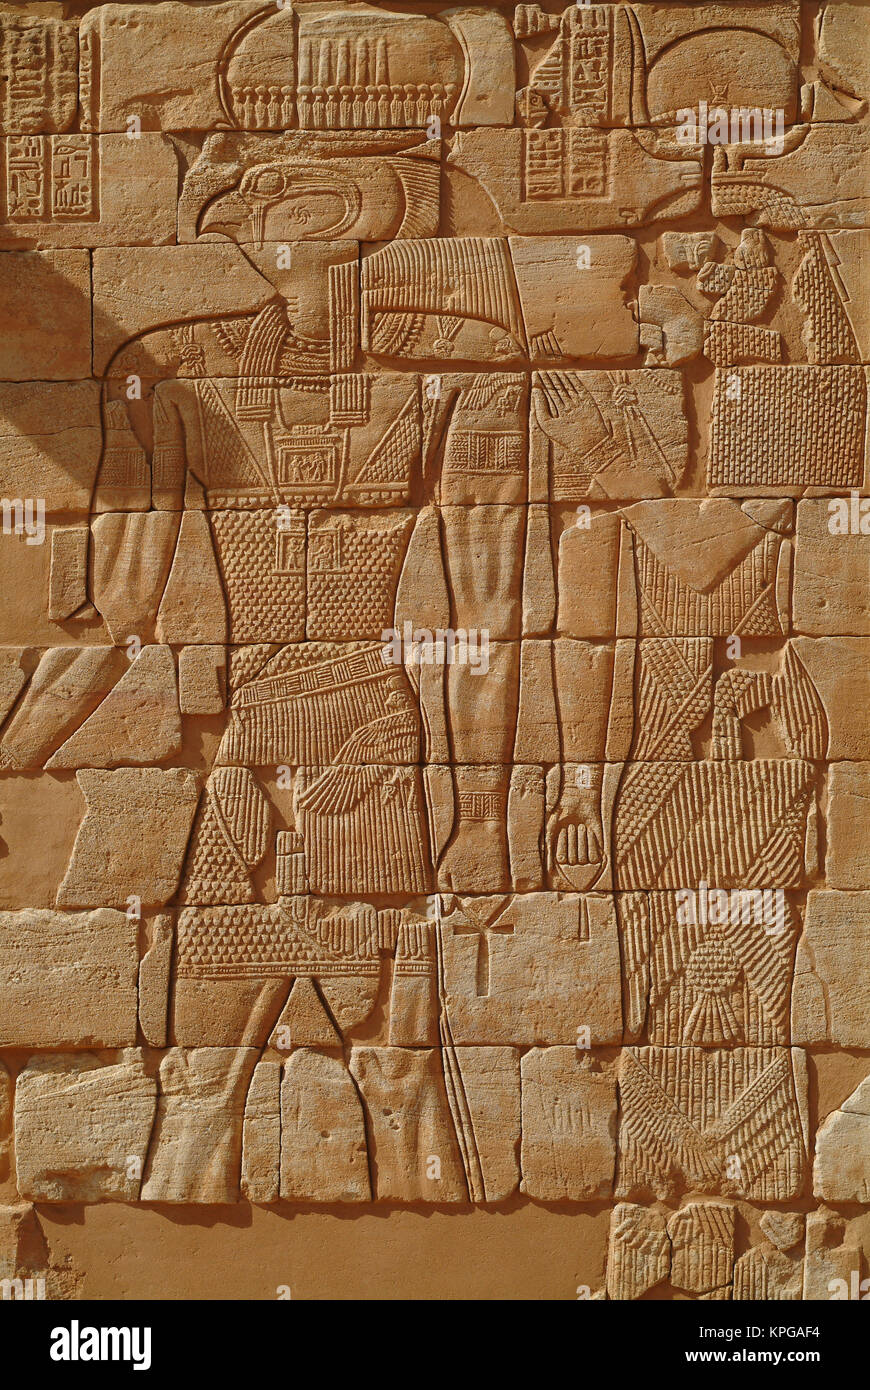 Sudan, North (Nubia), Bas-relief of Horus in Kom Ombo Temple - Stock Image